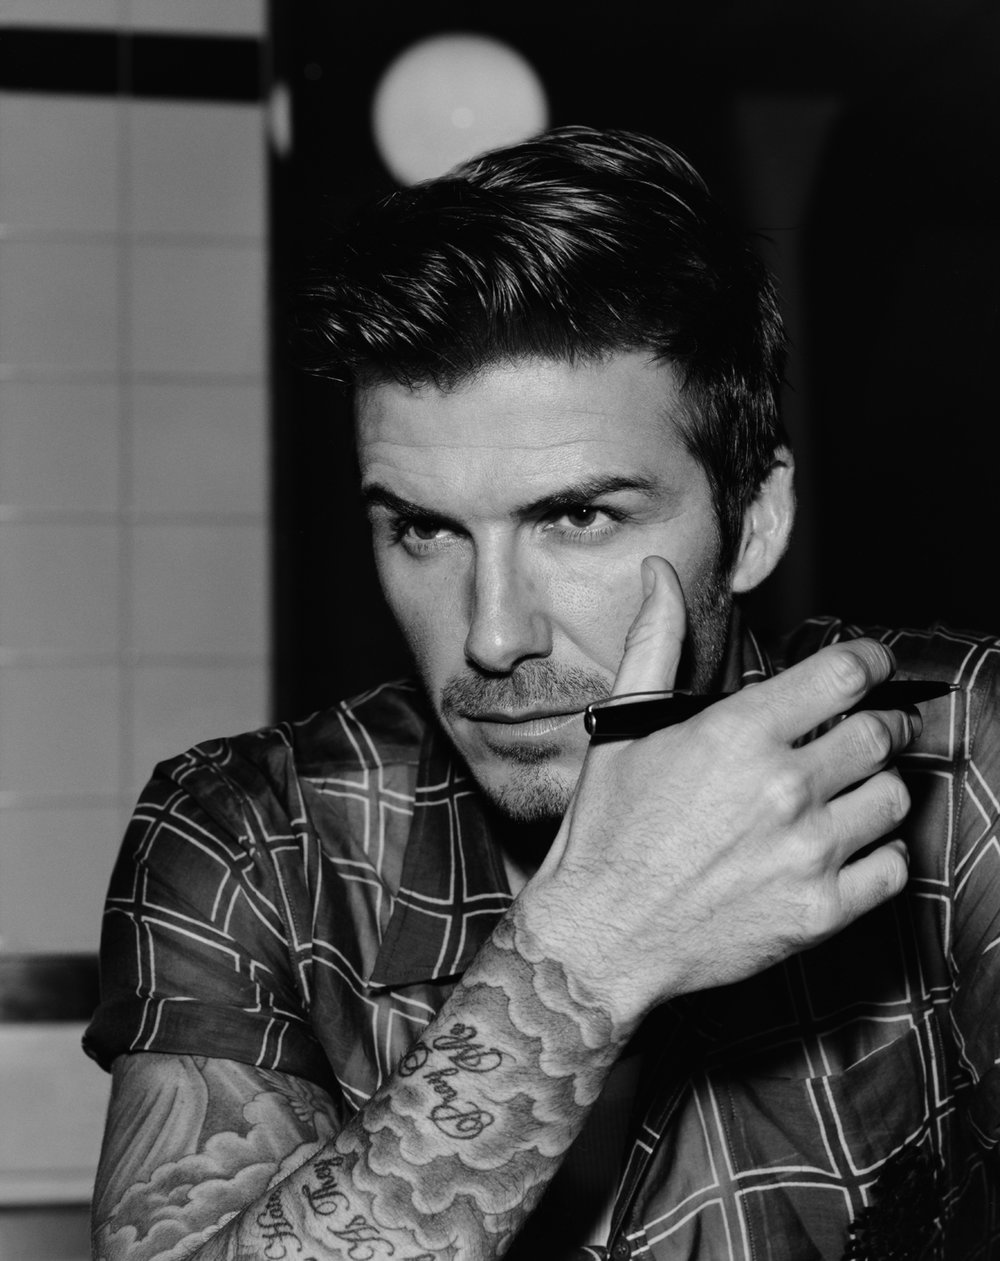 David Beckham / Fantastic Man / Alasdair Mclellan